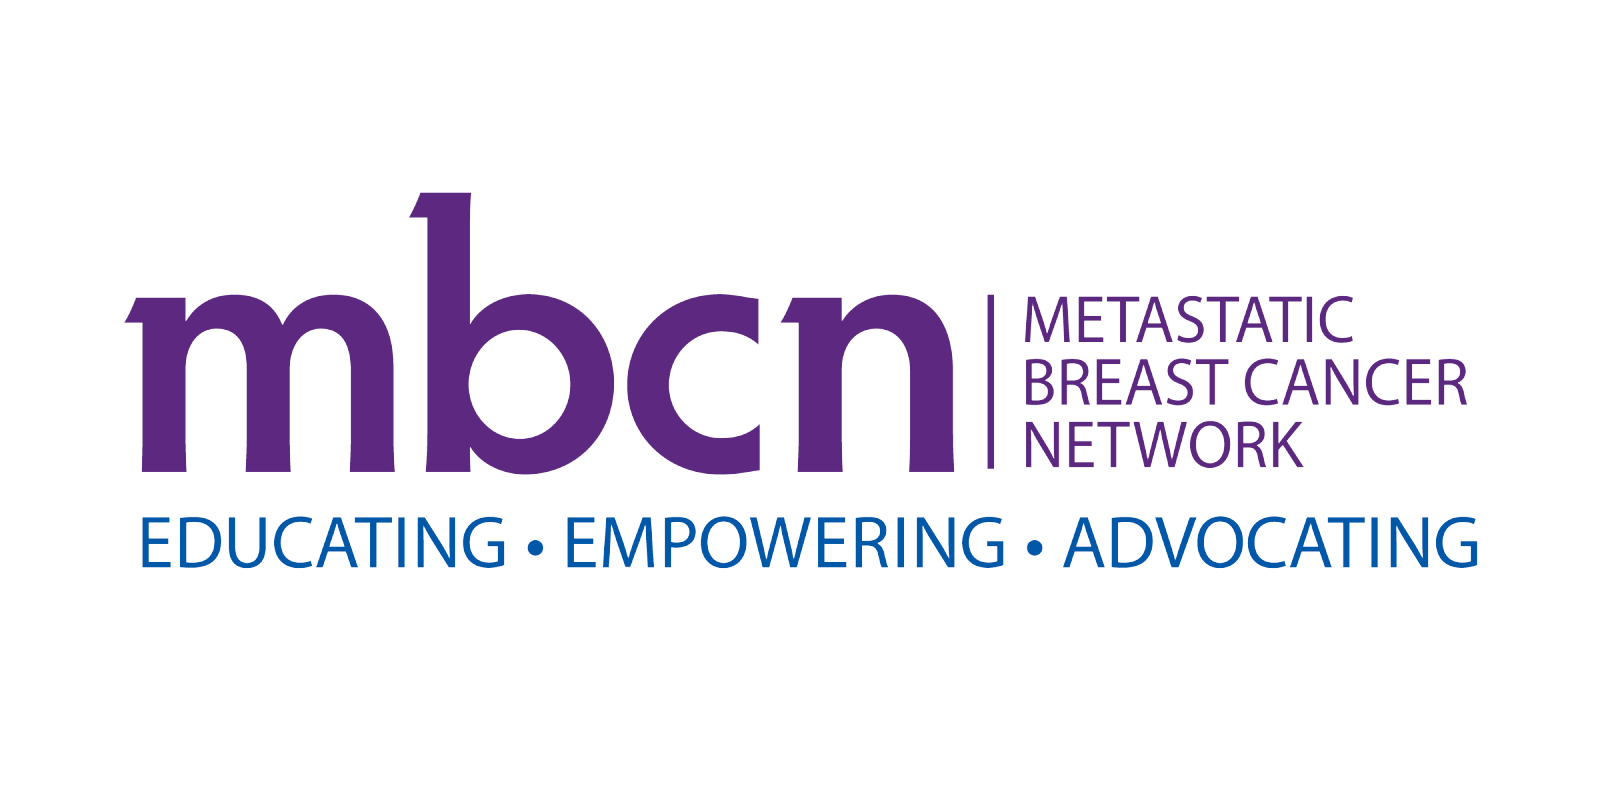 Sap Partners | Advocacy | <b>Metastatic Breast Cancer Network </b>